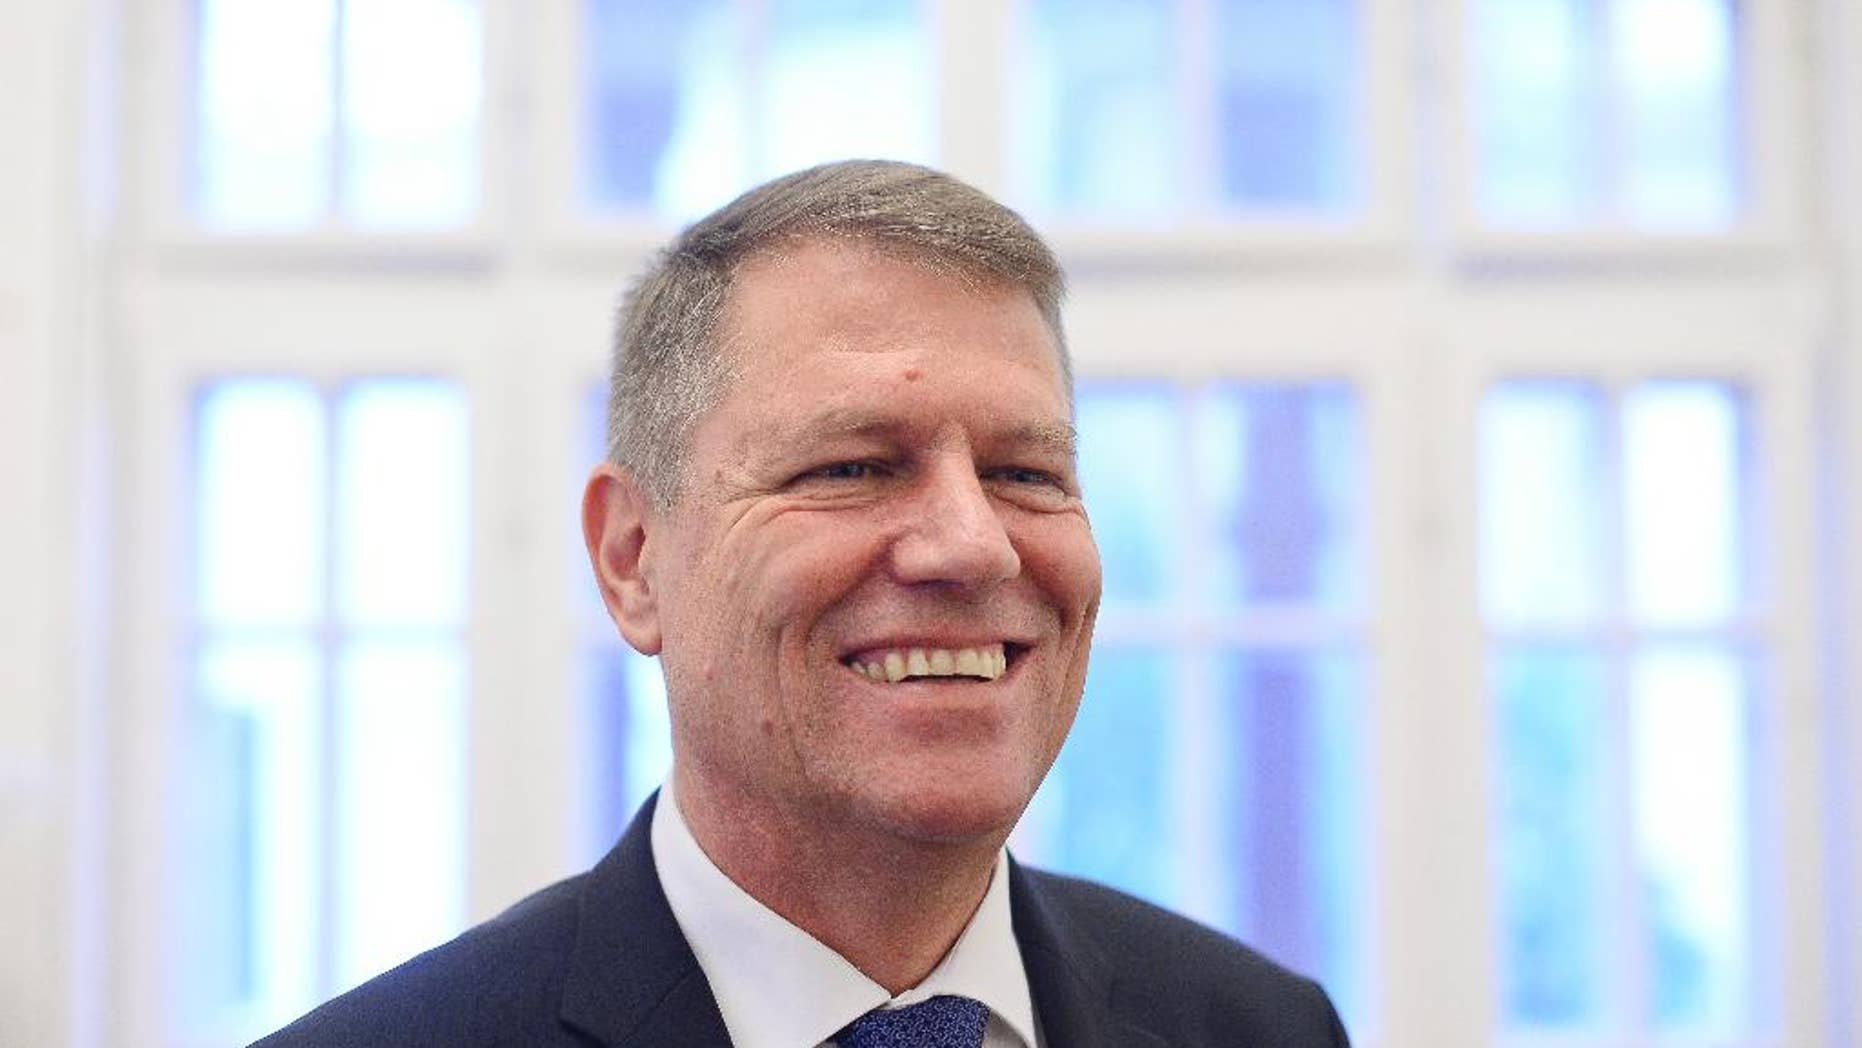 "Klaus Iohannis, leader of Romania's center-right Liberals and mayor of the Transylvanian city of Sibiu, smiles while posing for a portrait, shortly after giving an interview to the Associated Press, on the first morning after exit polls in the presidential elections runoff in Bucharest, Romania, Monday, Nov. 17, 2014. The ethnic German mayor who defeated Romania's Prime Minister Victor Ponta in a presidential runoff said his victory signaled ""a deep change"" in Romania. (AP Photo/Octav Ganea, Mediafax) ROMANIA OUT"